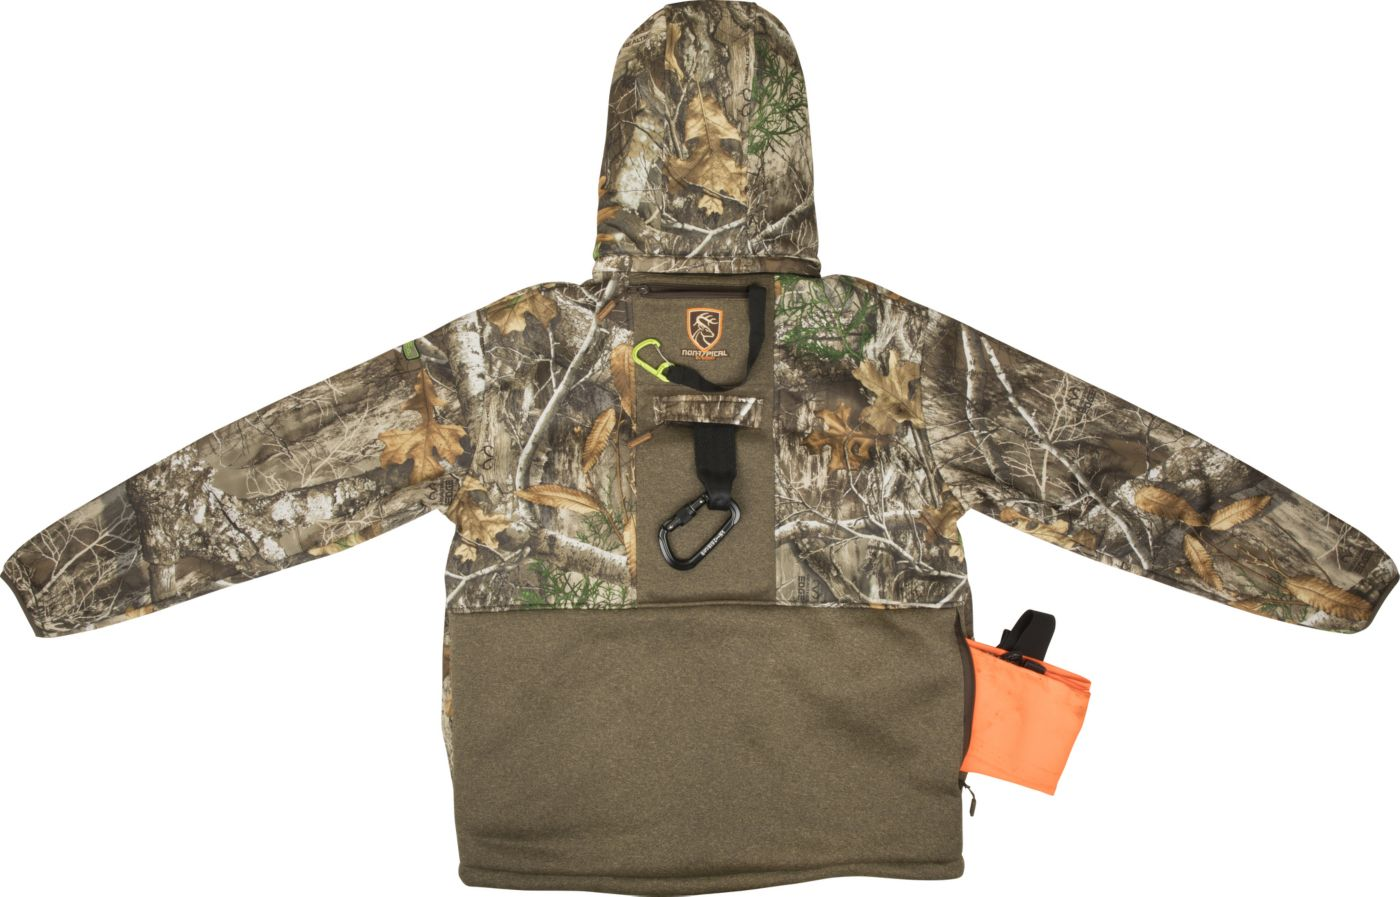 Drake Waterfowl Men's Non-Typical Stand Hunter's Silencer Hunting Jacket with Agion Active XL